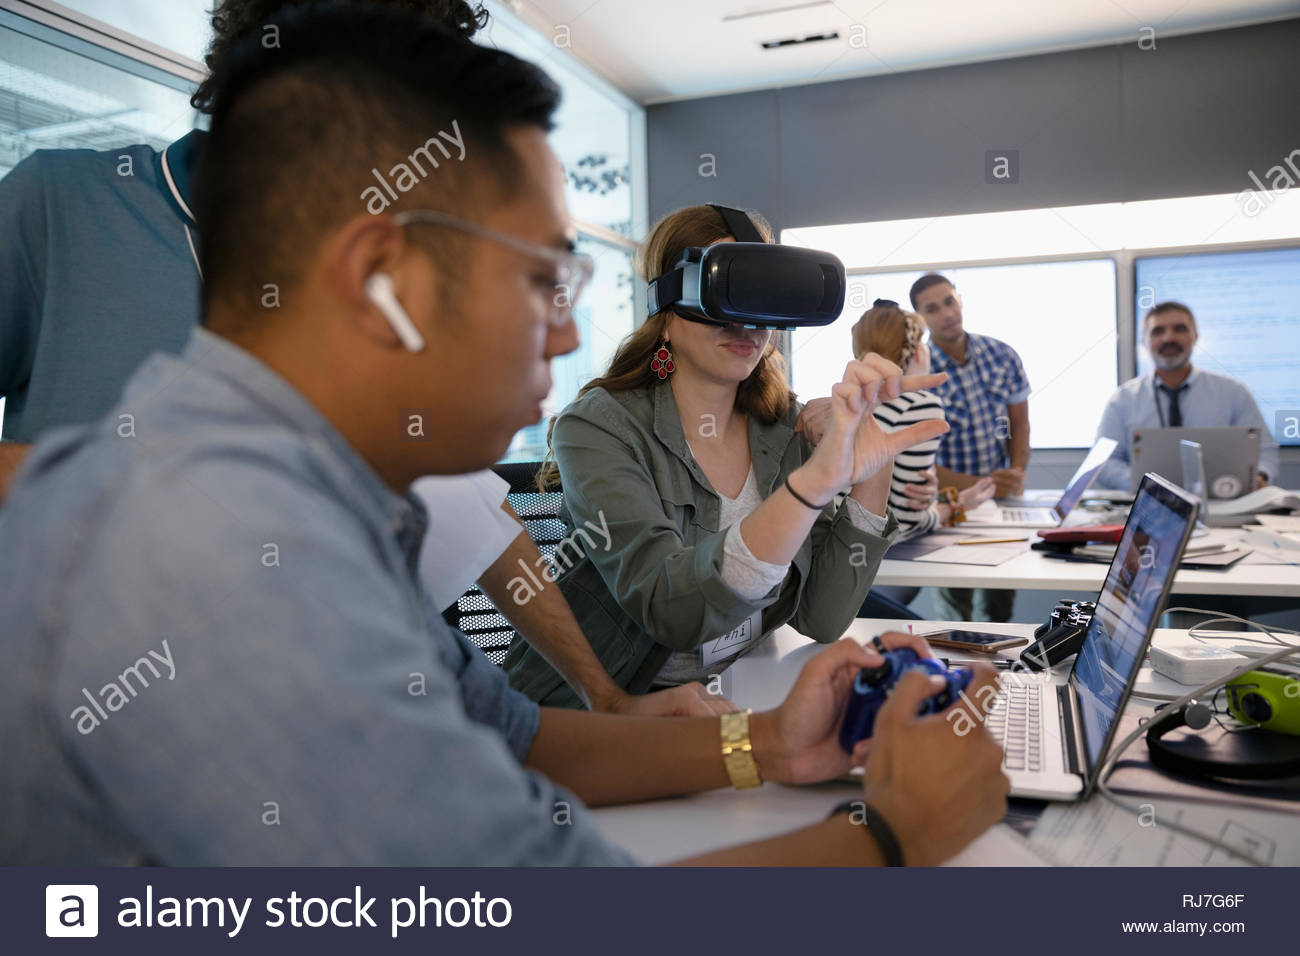 Computer programmers testing virtual reality simulator in office - Stock Image